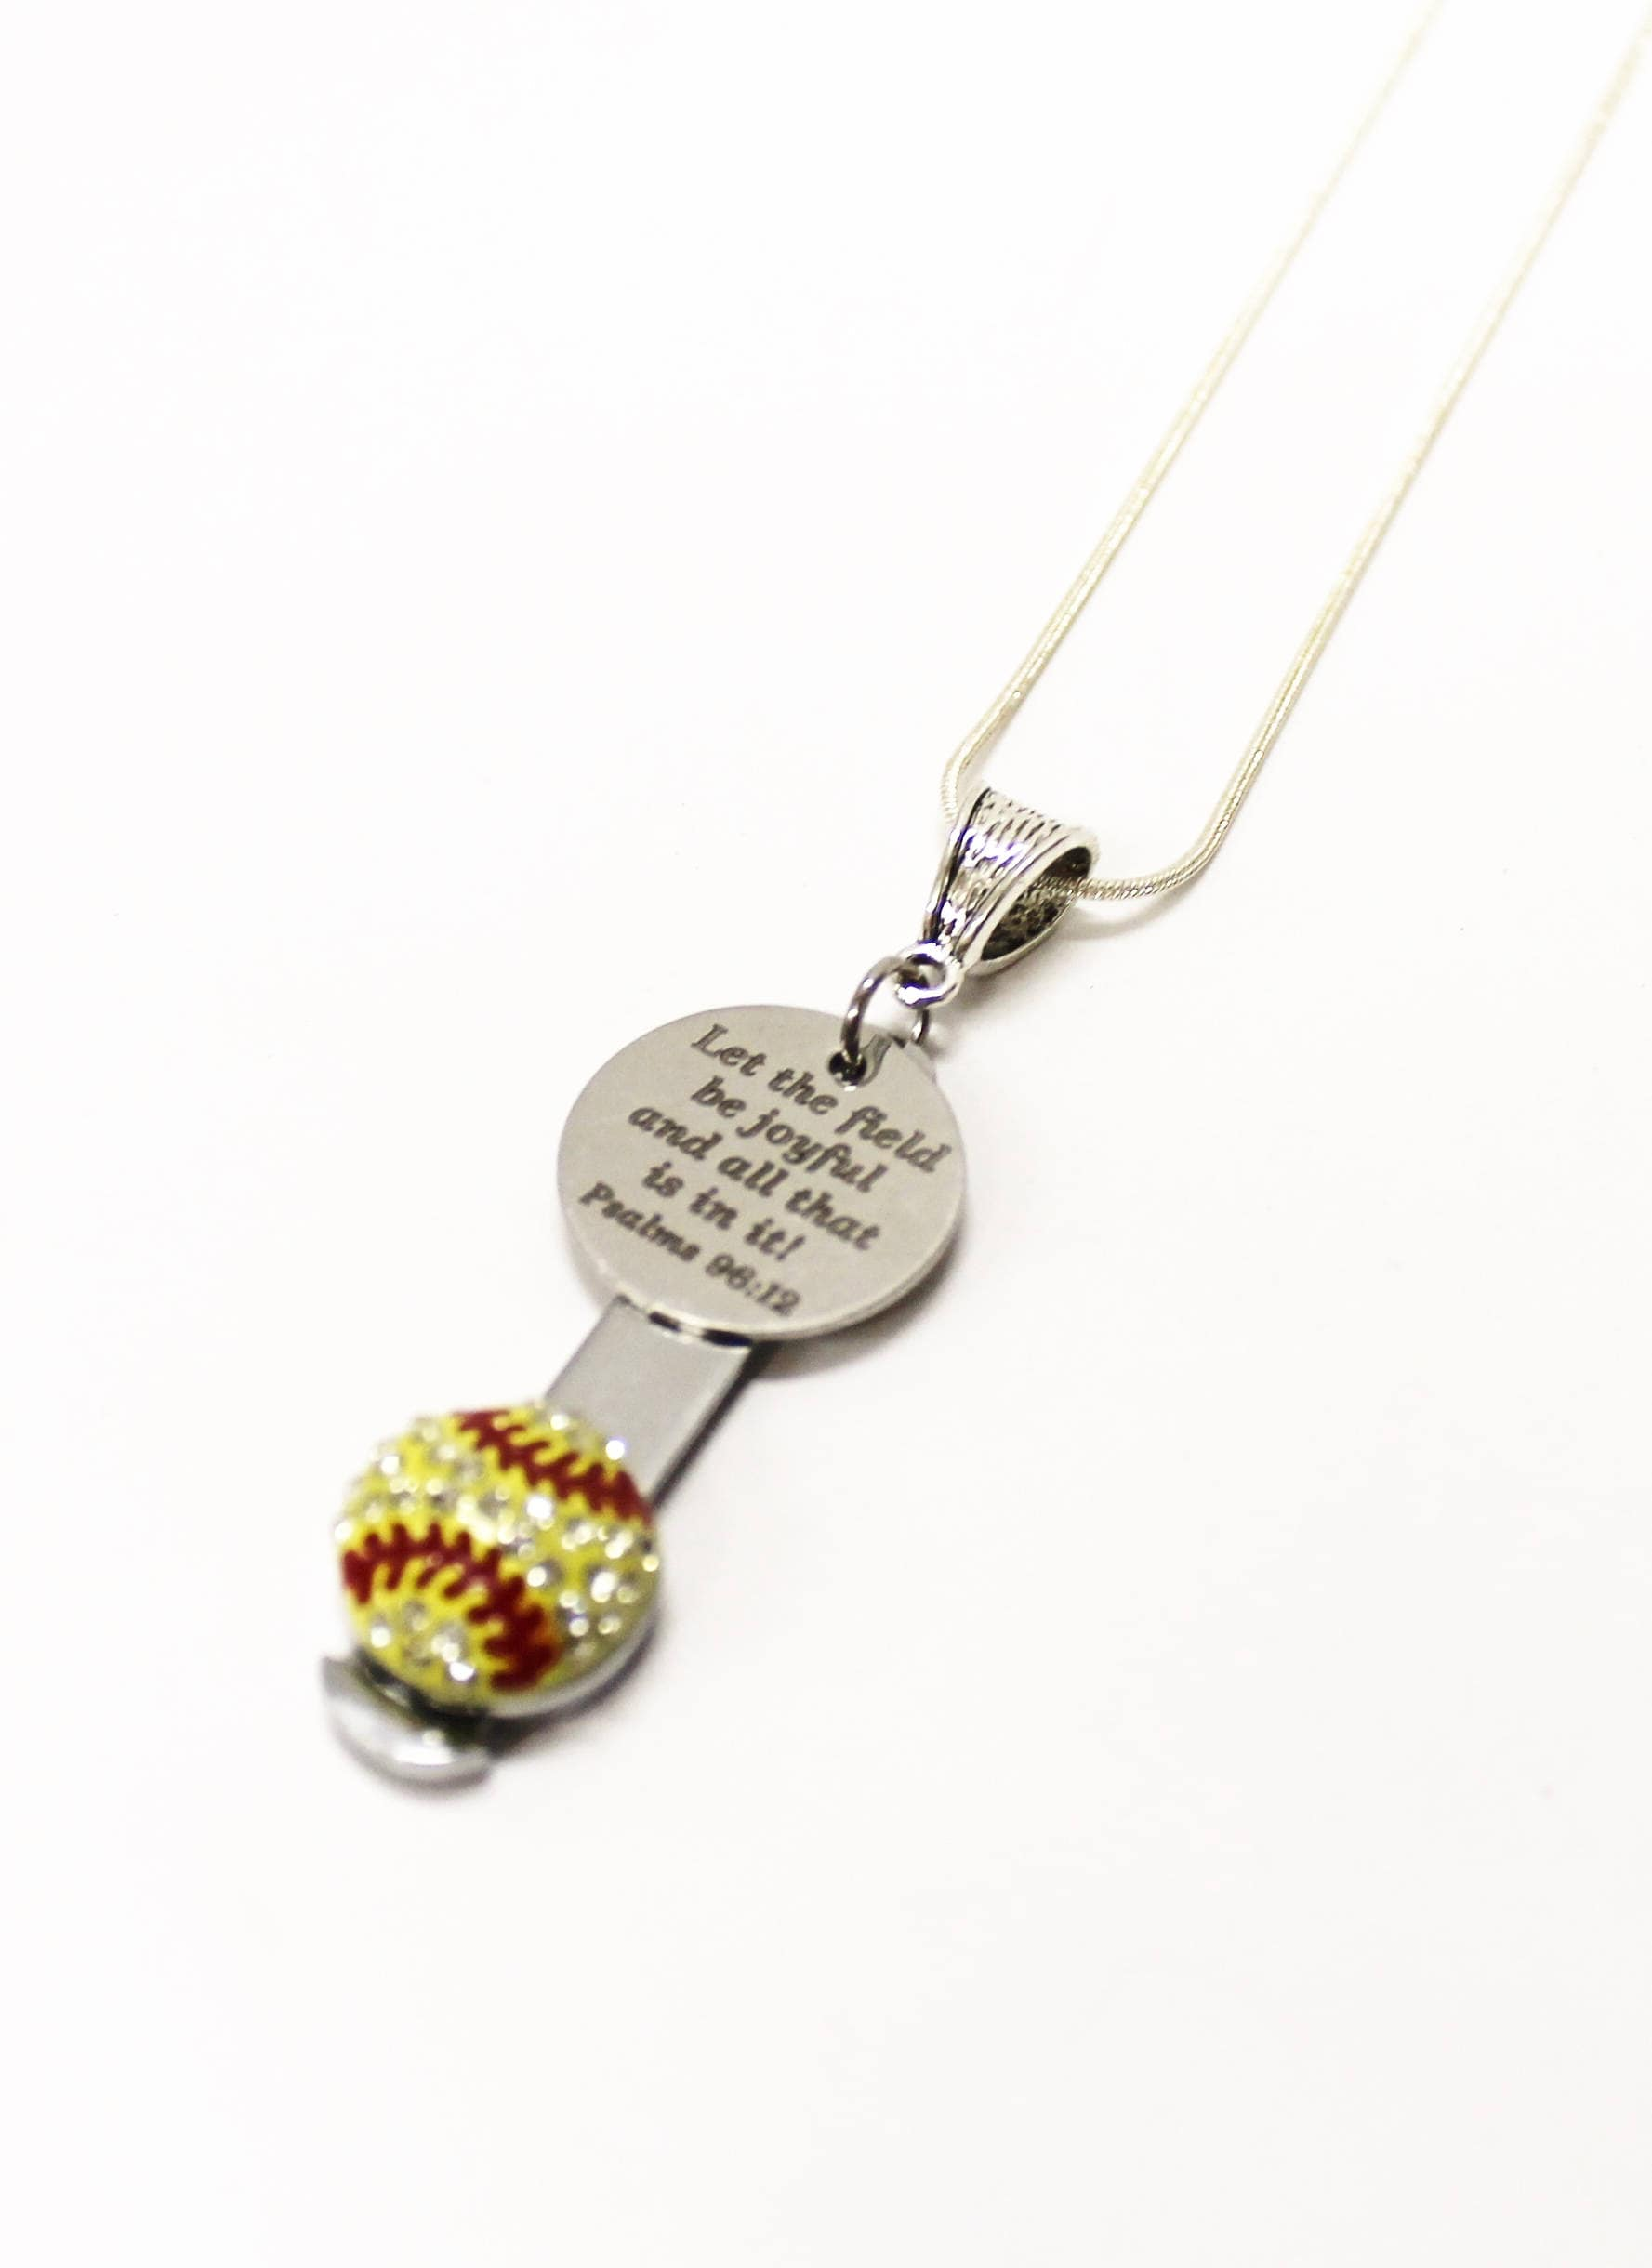 necklace player baseball similar items glove on sterling and charm gift etsy softball mom to silver pin coach